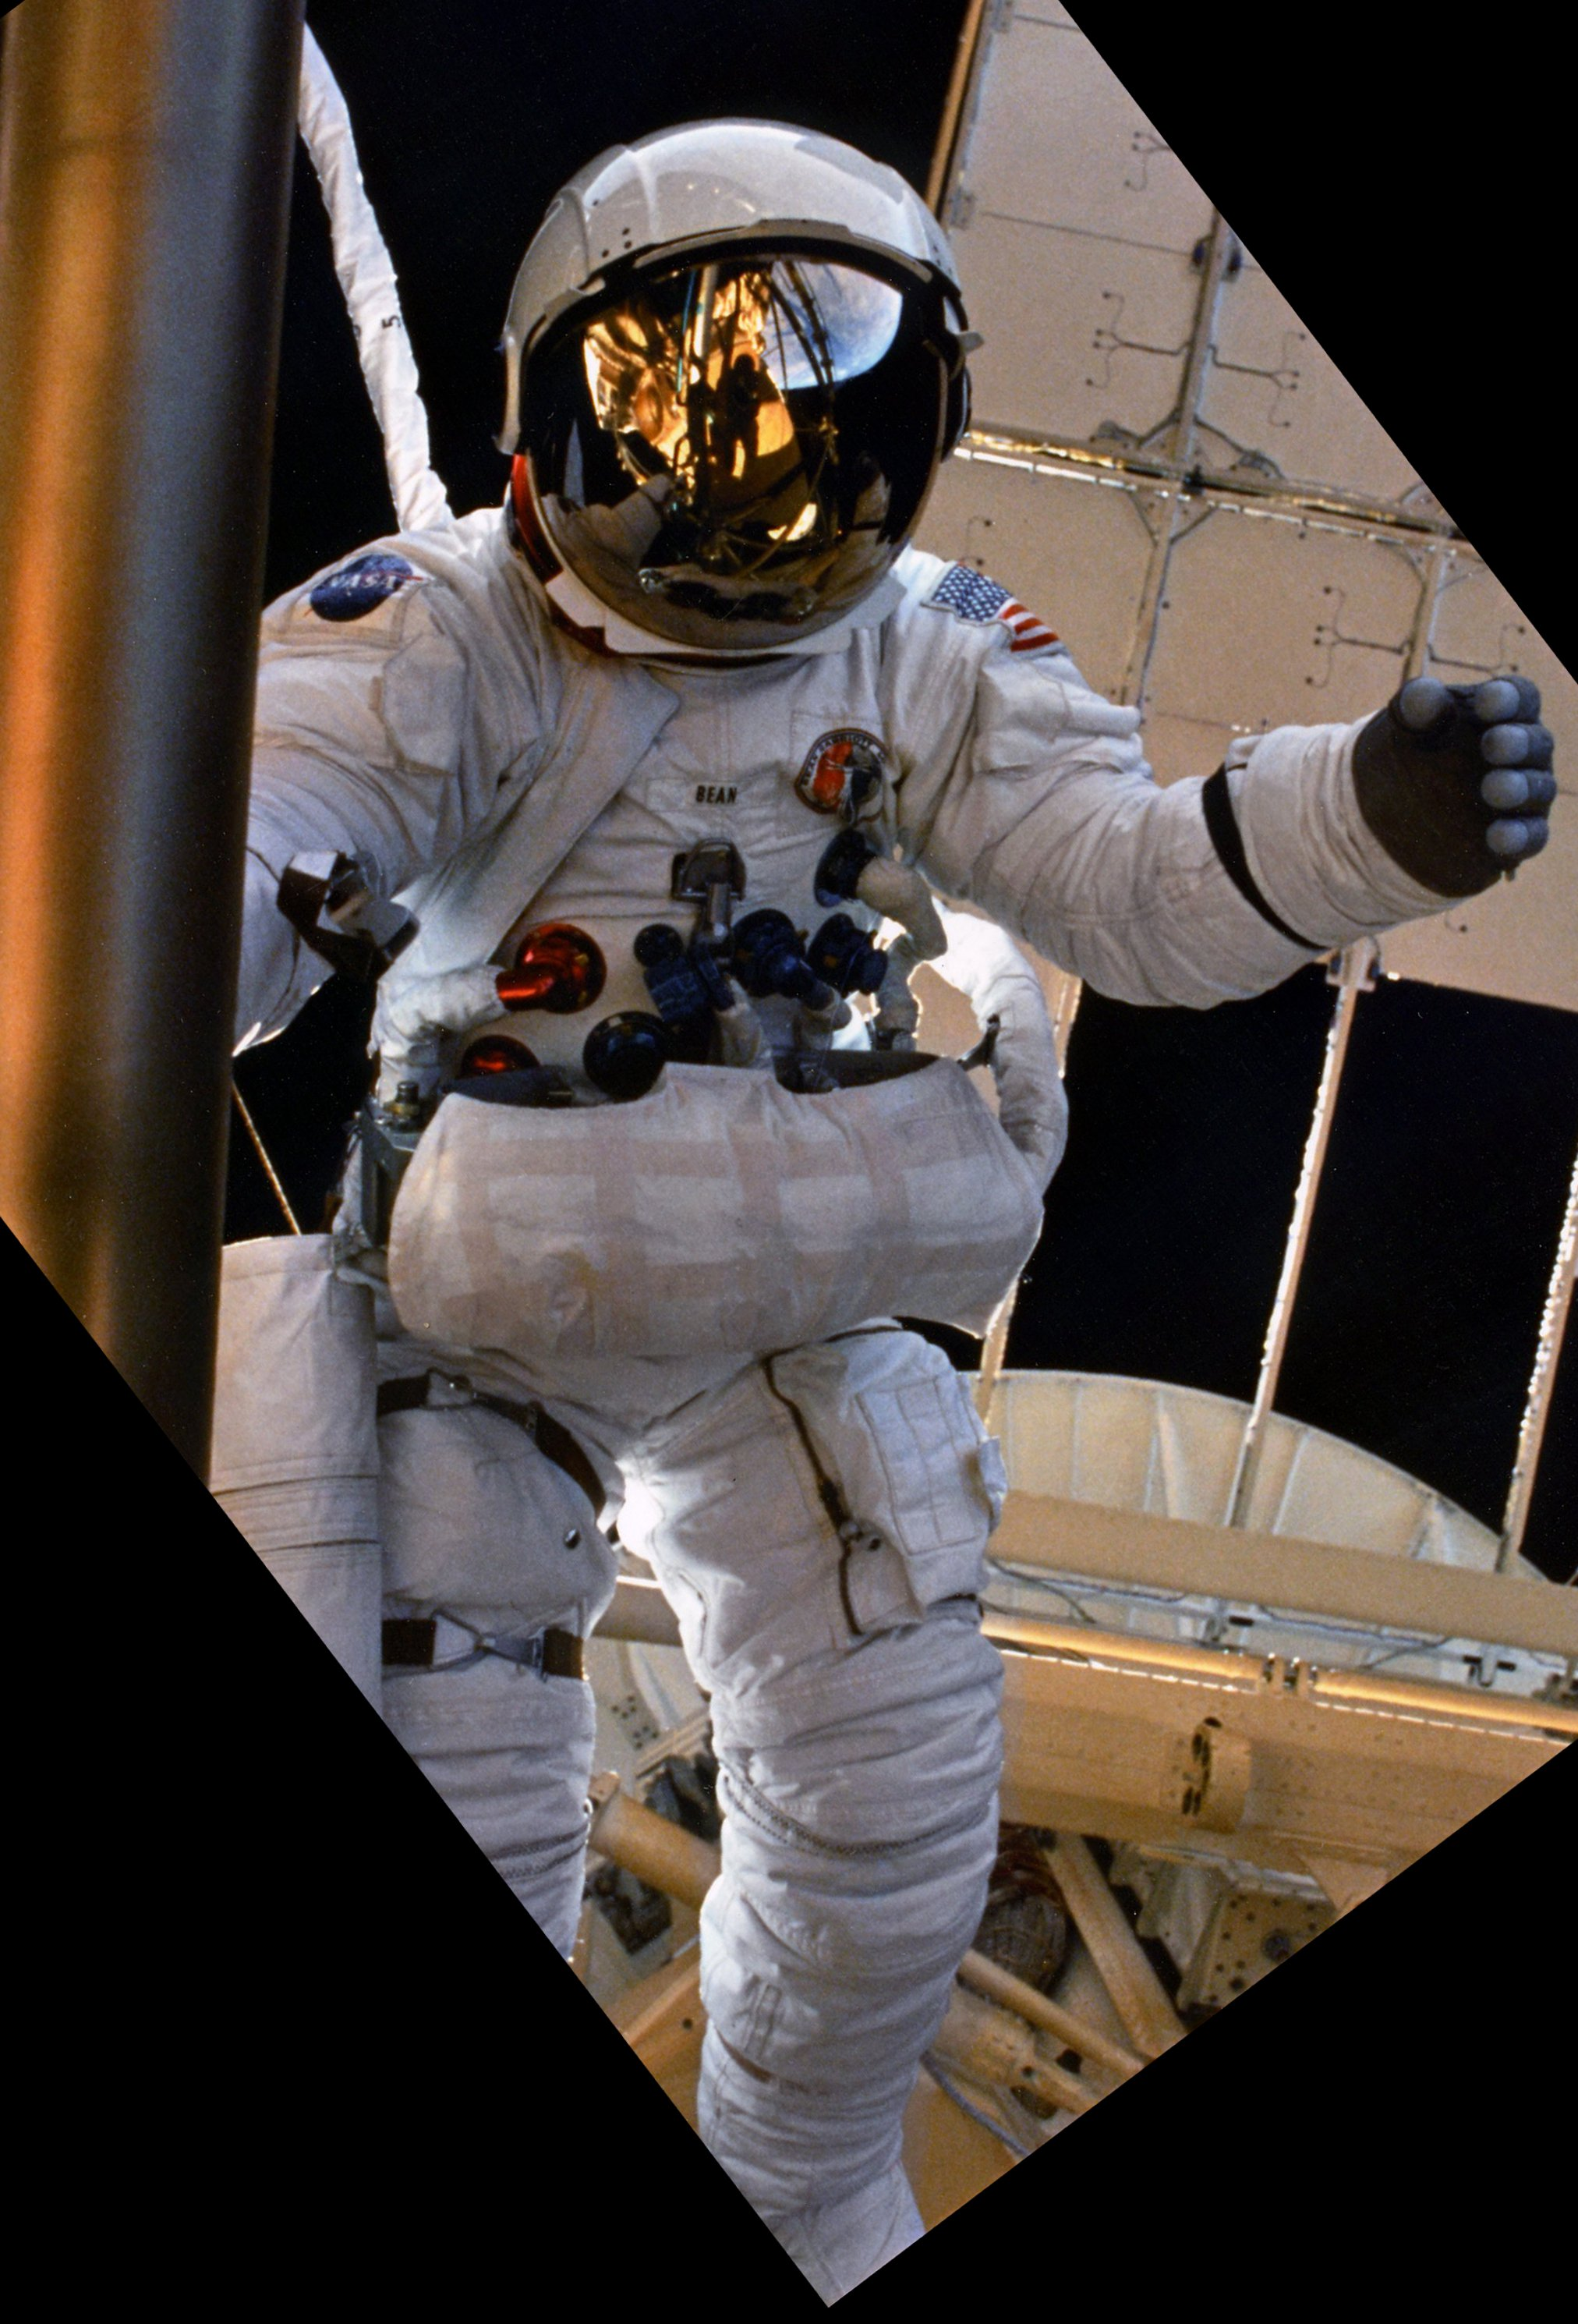 http://upload.wikimedia.org/wikipedia/commons/2/25/SL3-118-2180HR4_Alan_Bean_during_Skylab_3_EVA.jpg